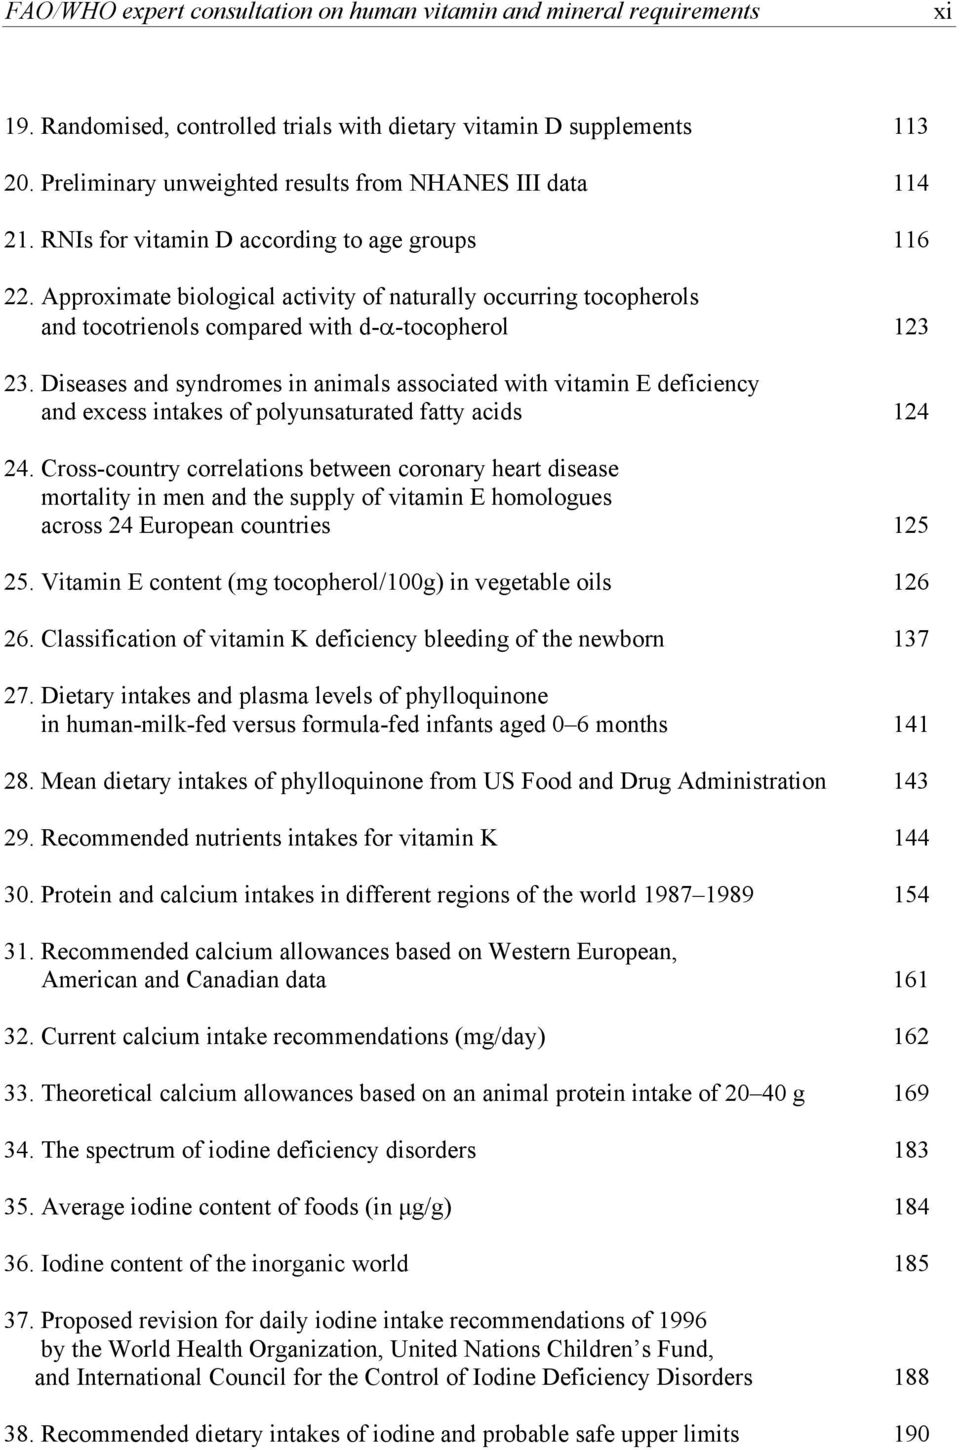 Human Vitamin and Mineral Requirements - PDF Free Download